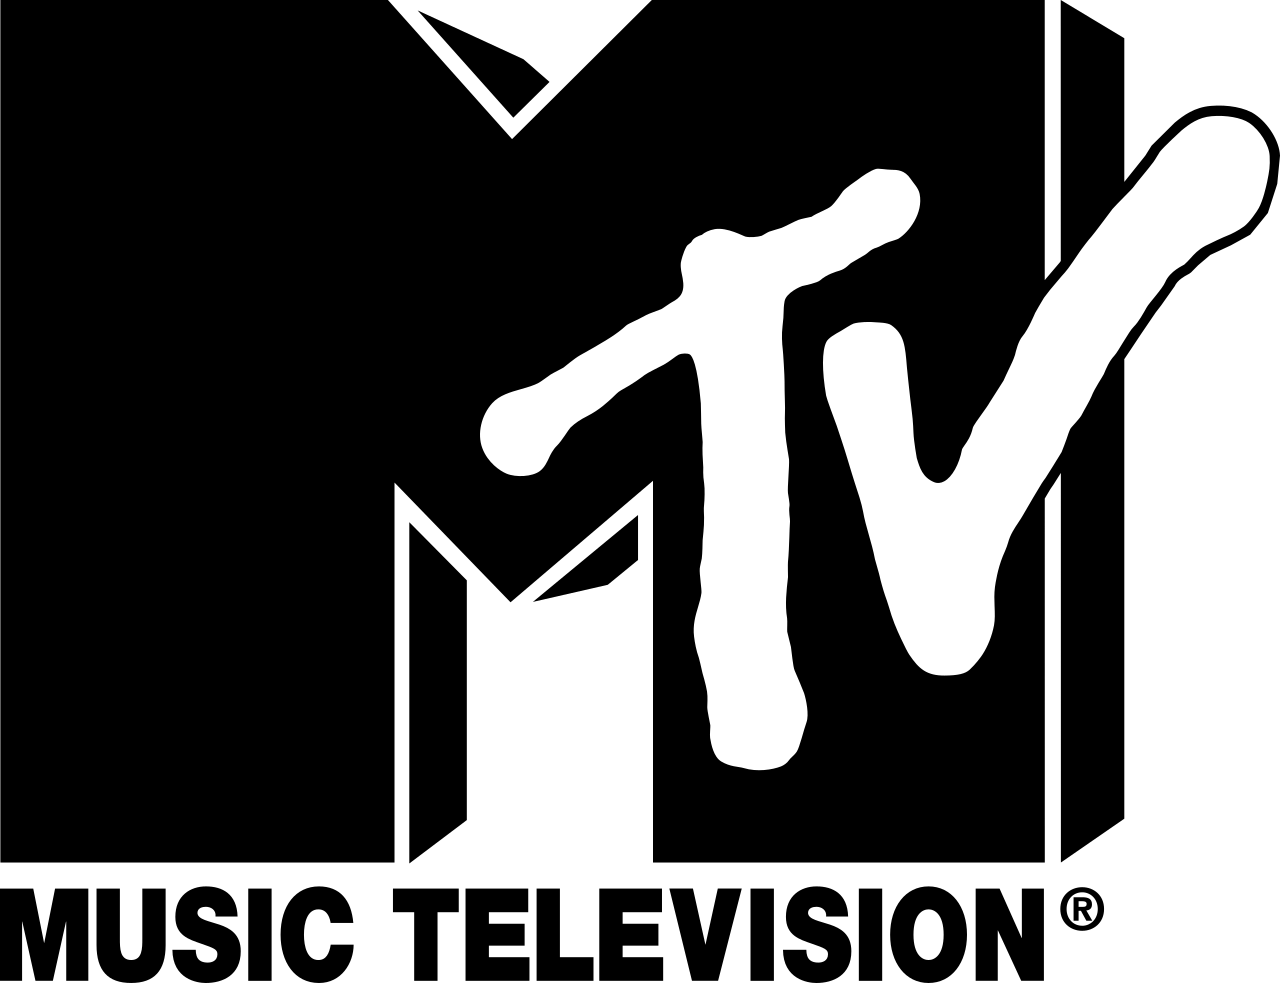 MTV_Logo-transparent.png